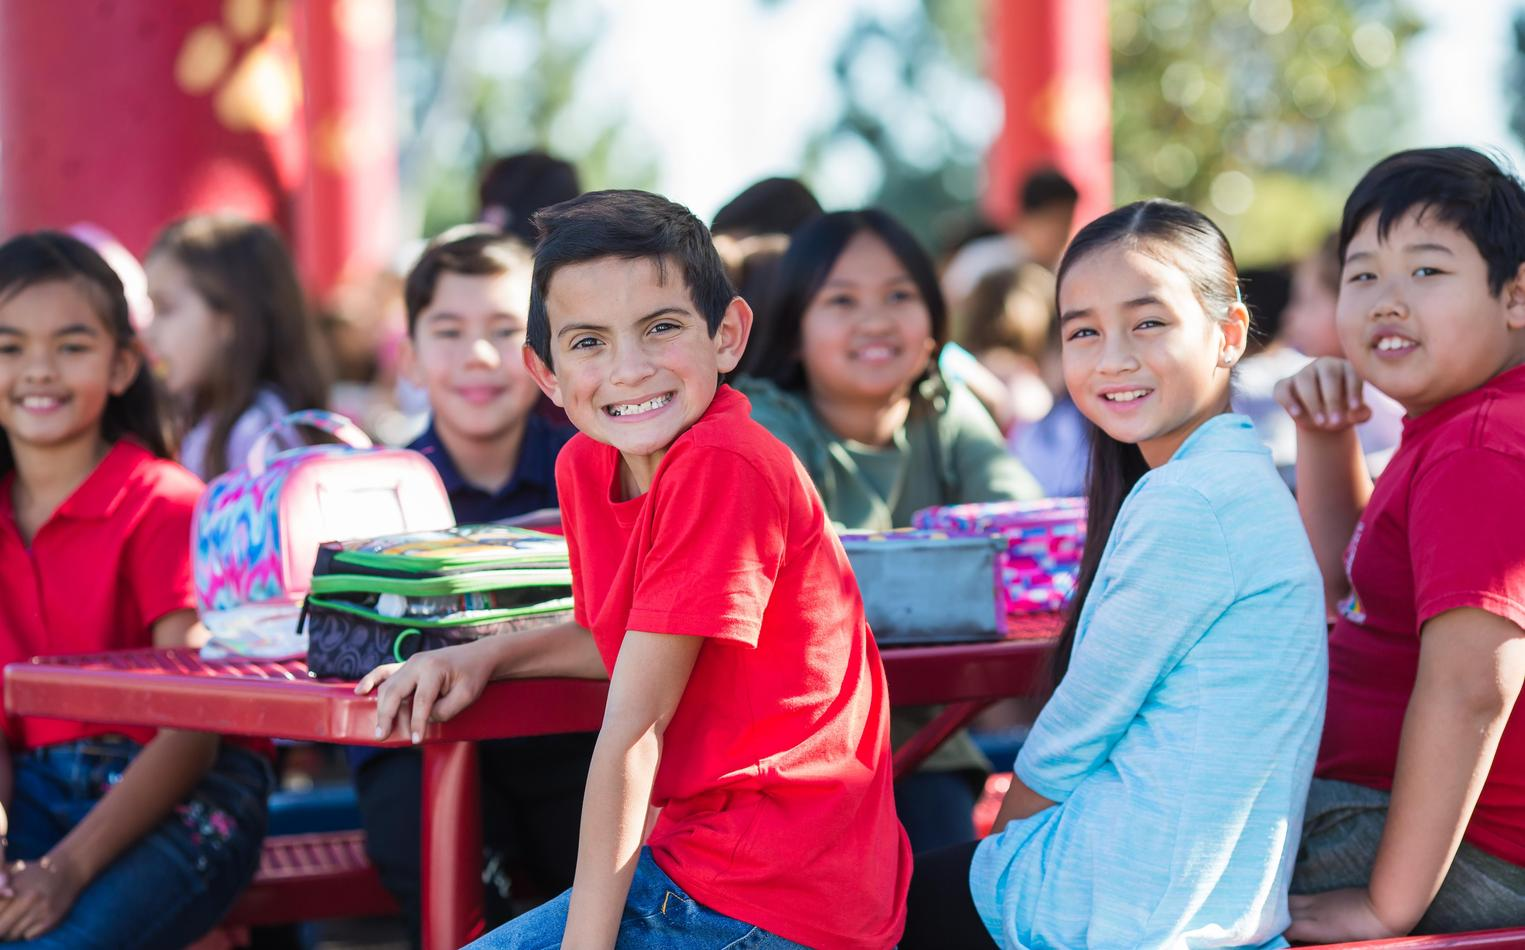 A group of young students smile for the camera at a lunch bench.